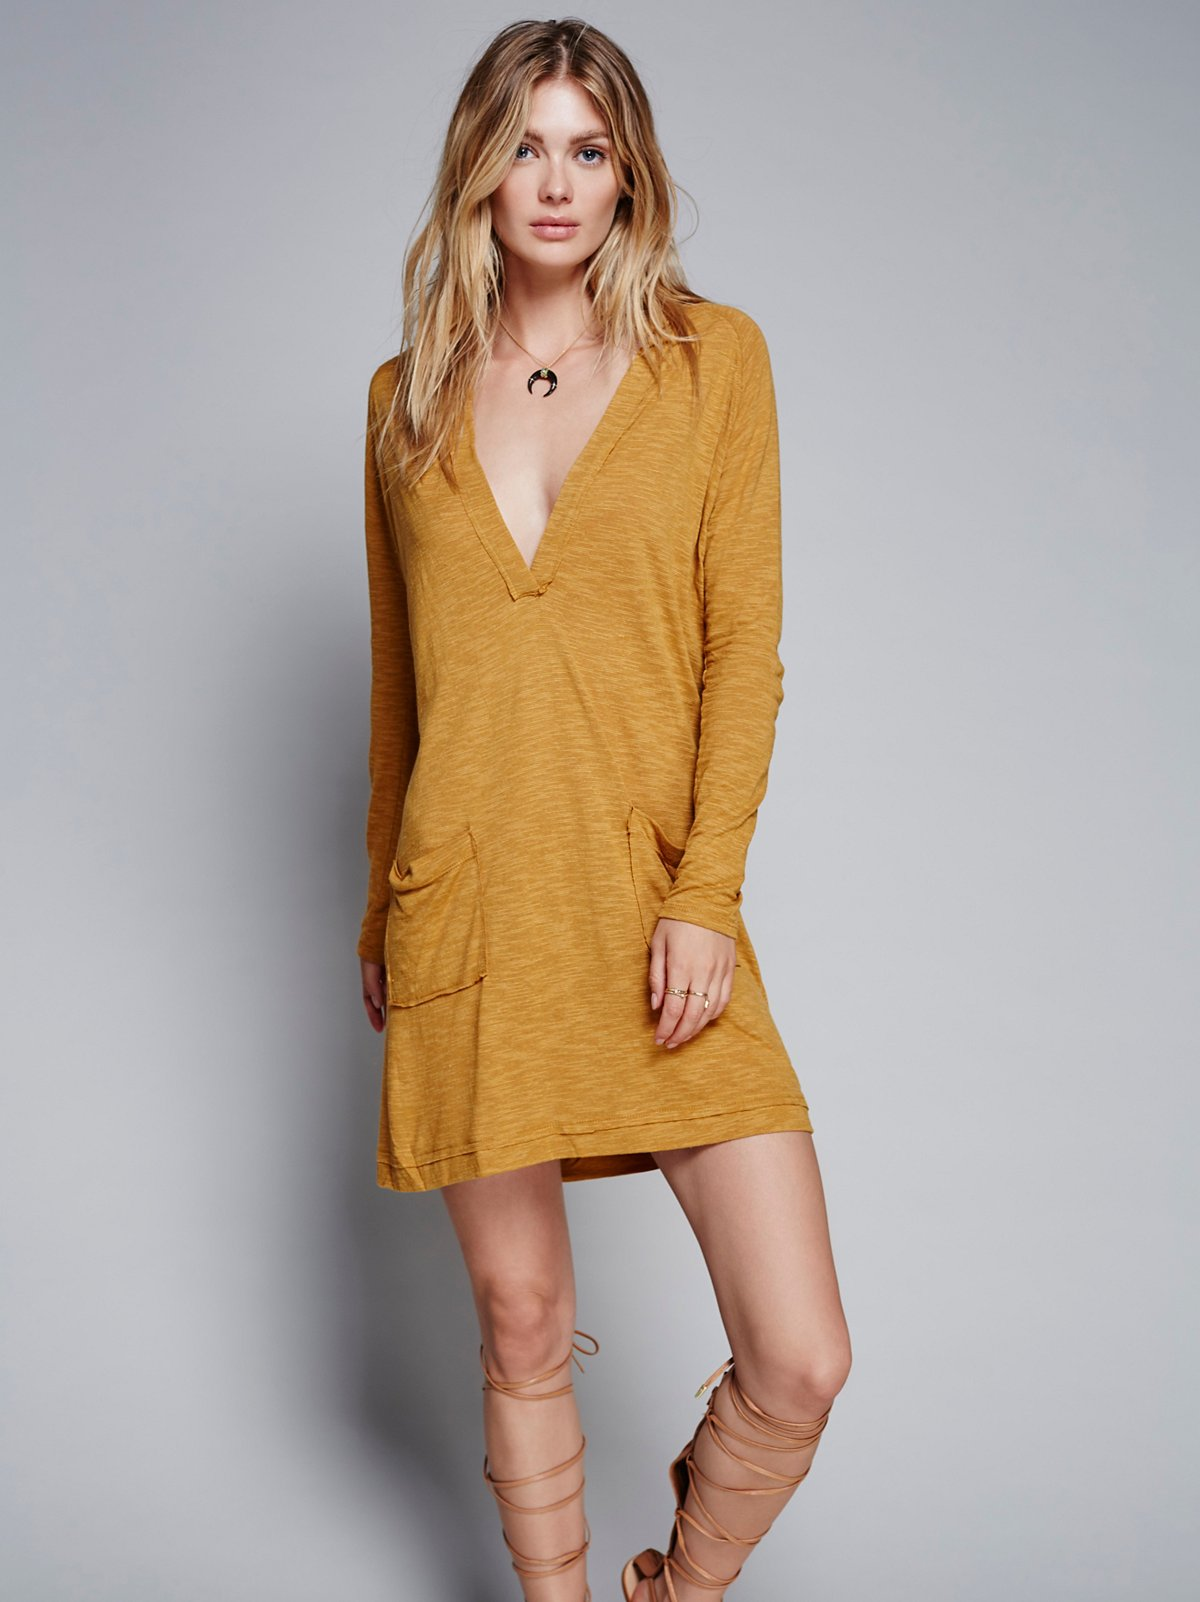 Bow Chicka Wow Wow Tunic